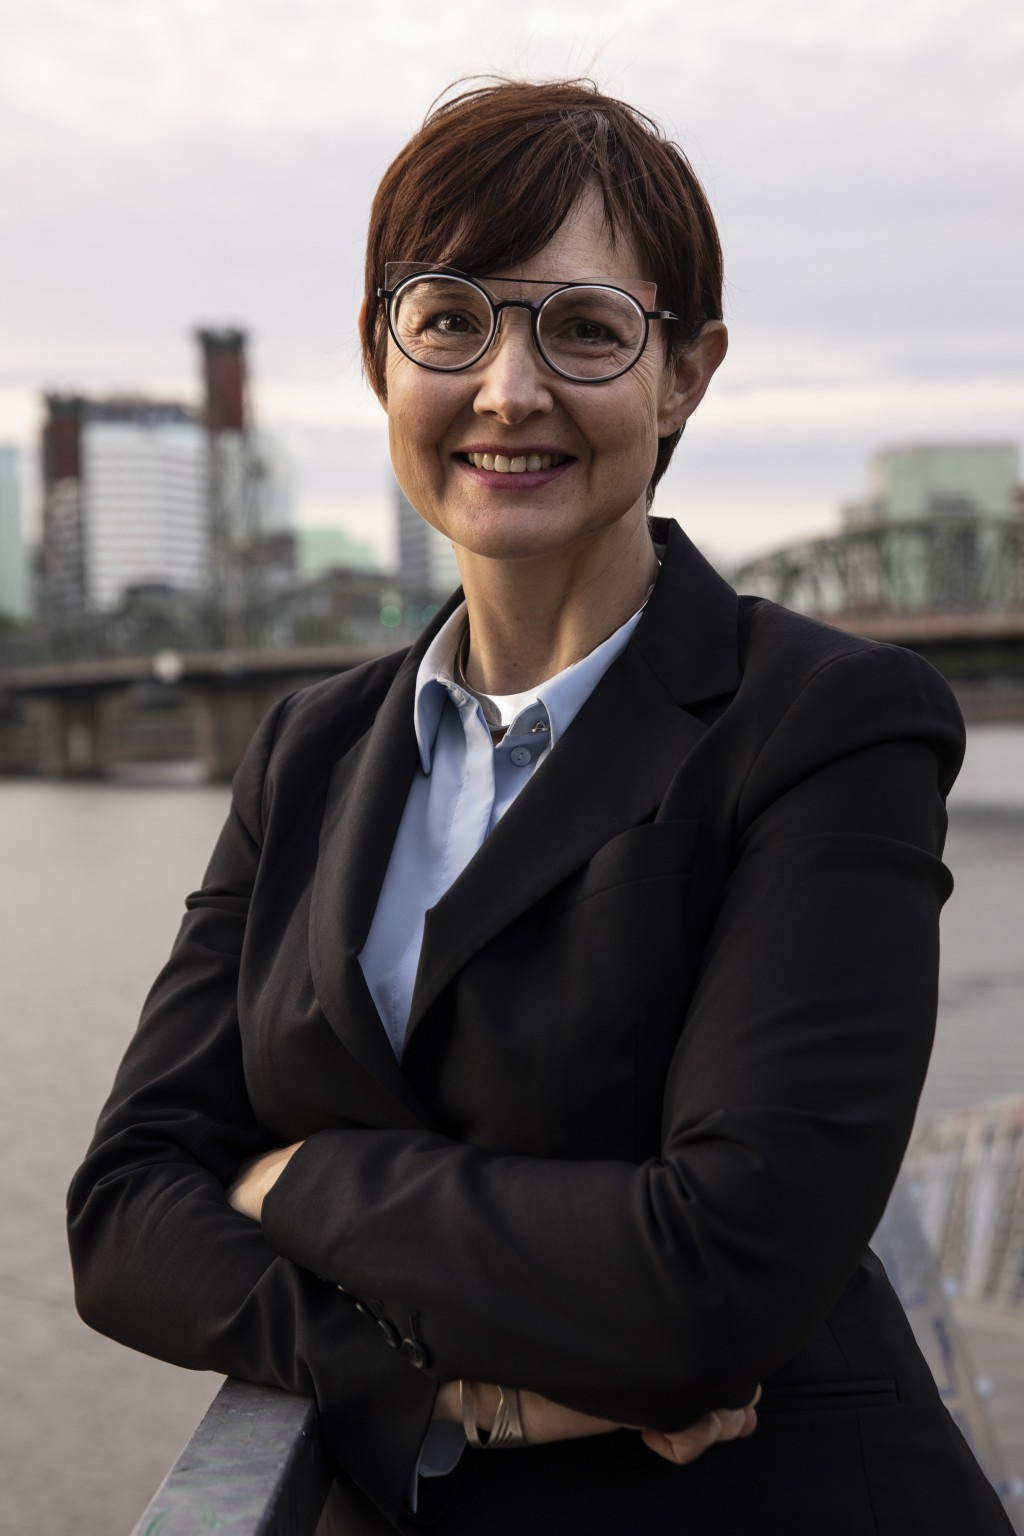 Portland, Oregon mayoral candidate Sarah Iannarone poses in Portland Friday, Oct. 9, 2020. With Election Day weeks away, Portland Mayor Ted Wheeler is...